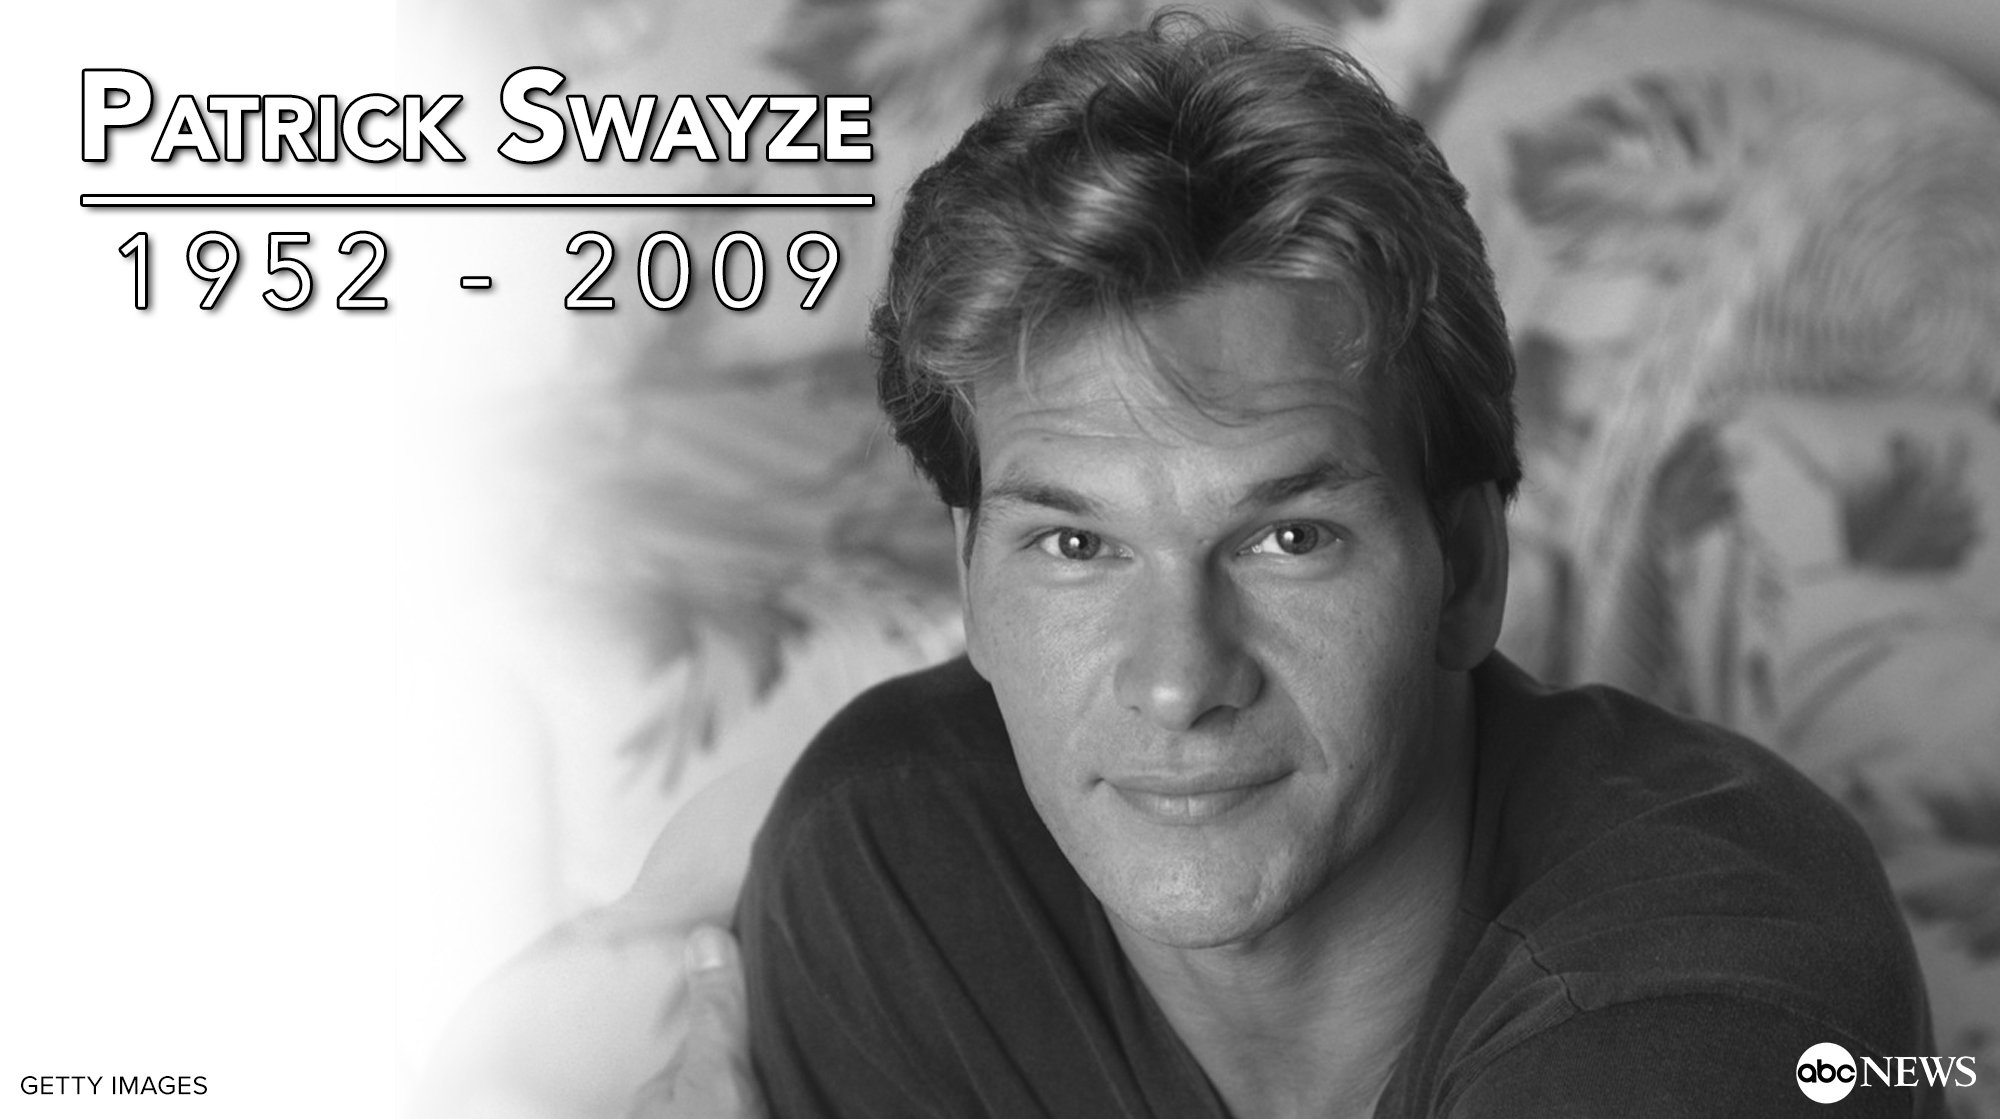 Patrick Swayze was born on this day in 1952. He would have turned 64 years old today. #RIP https://t.co/kyh9XnSQCr